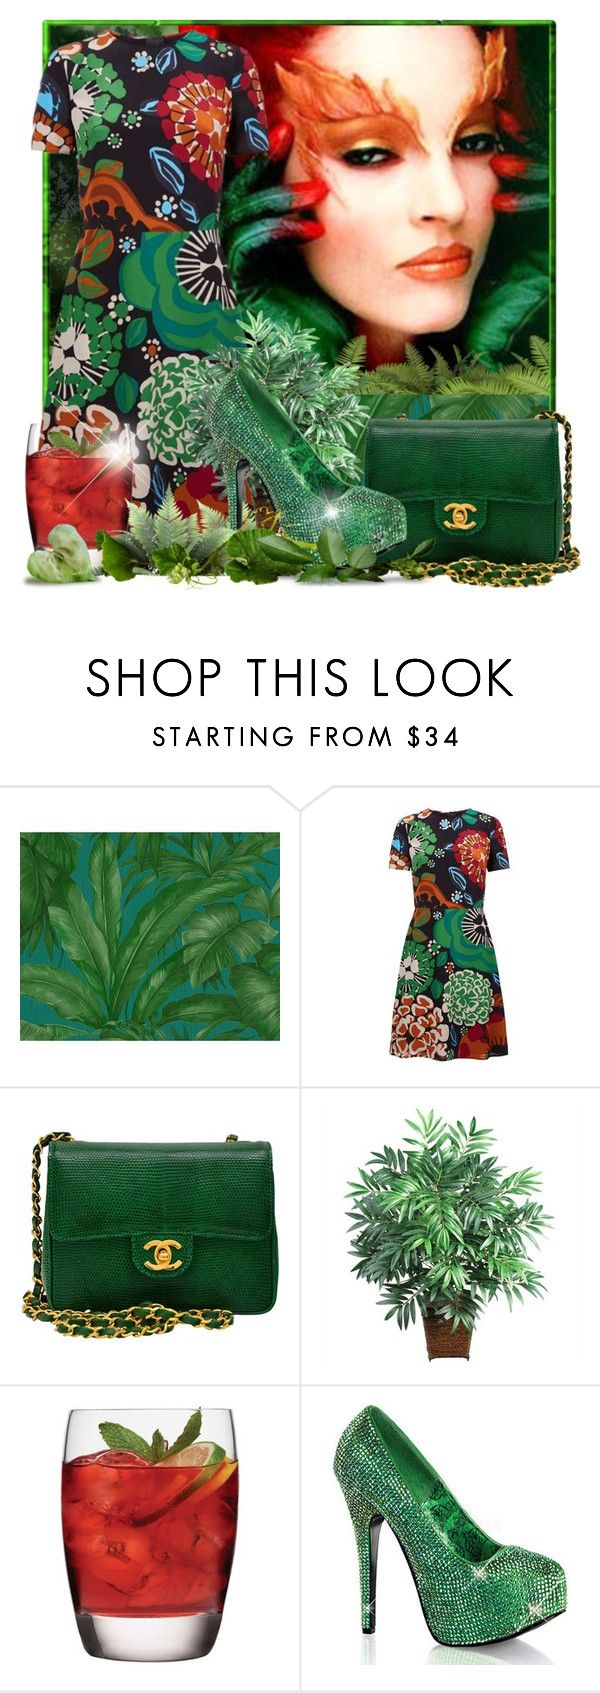 """What's your Poison?"" by doozer ❤ liked on Polyvore featuring Versace, Burberry, Chanel, Nearly Natural, Luigi Bormioli and Bordello"